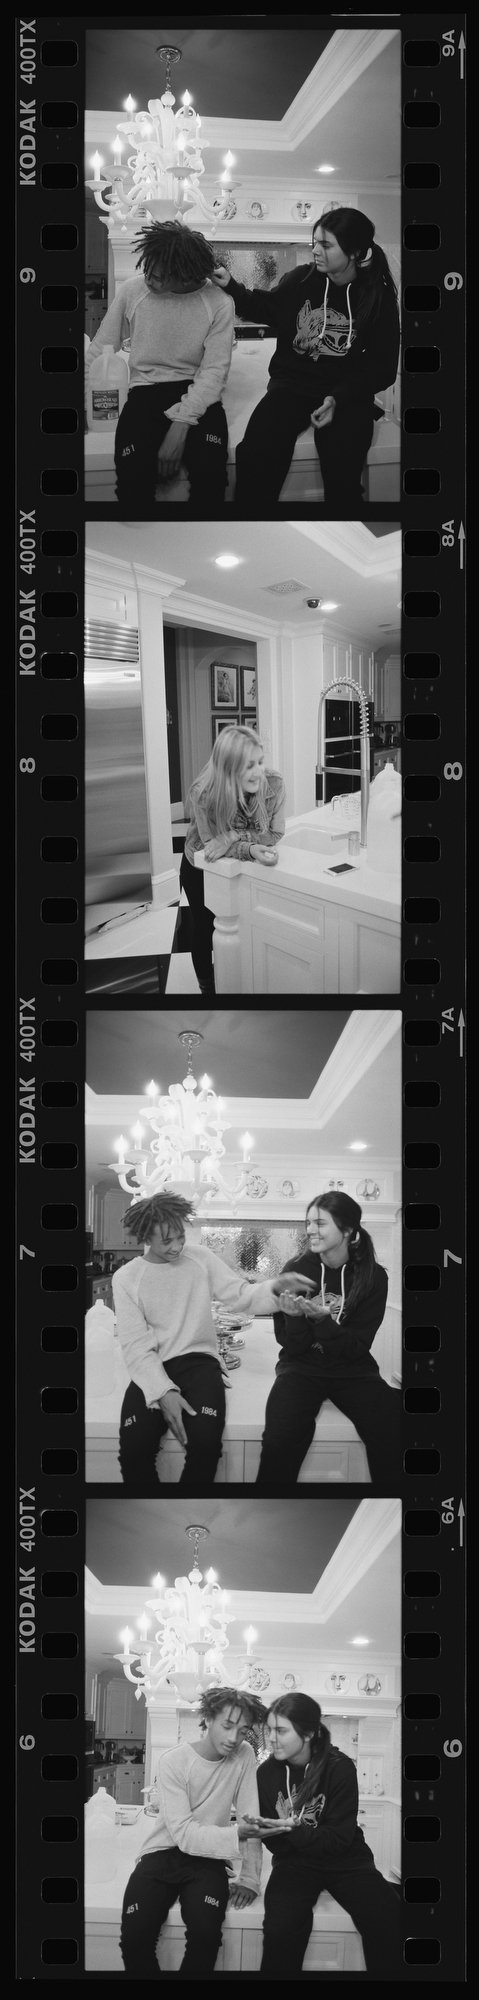 A film strip of photos of Jaden Smith and Kendall Jenner sitting in a kitchen.